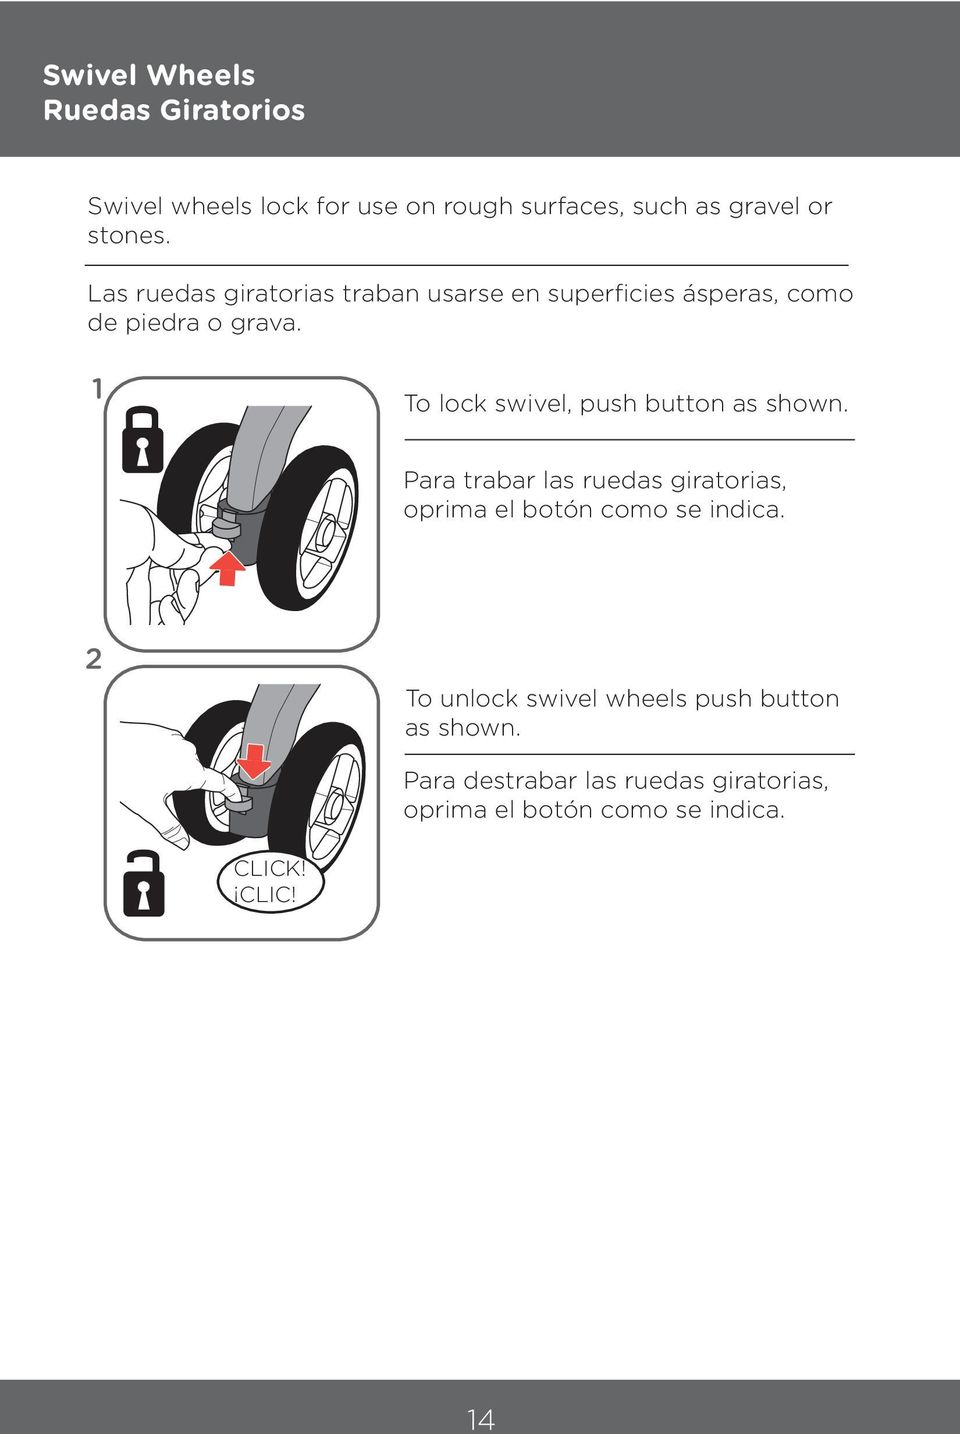 1 To lock swivel, push button as shown. Para trabar las ruedas giratorias, oprima el botón como se indica.